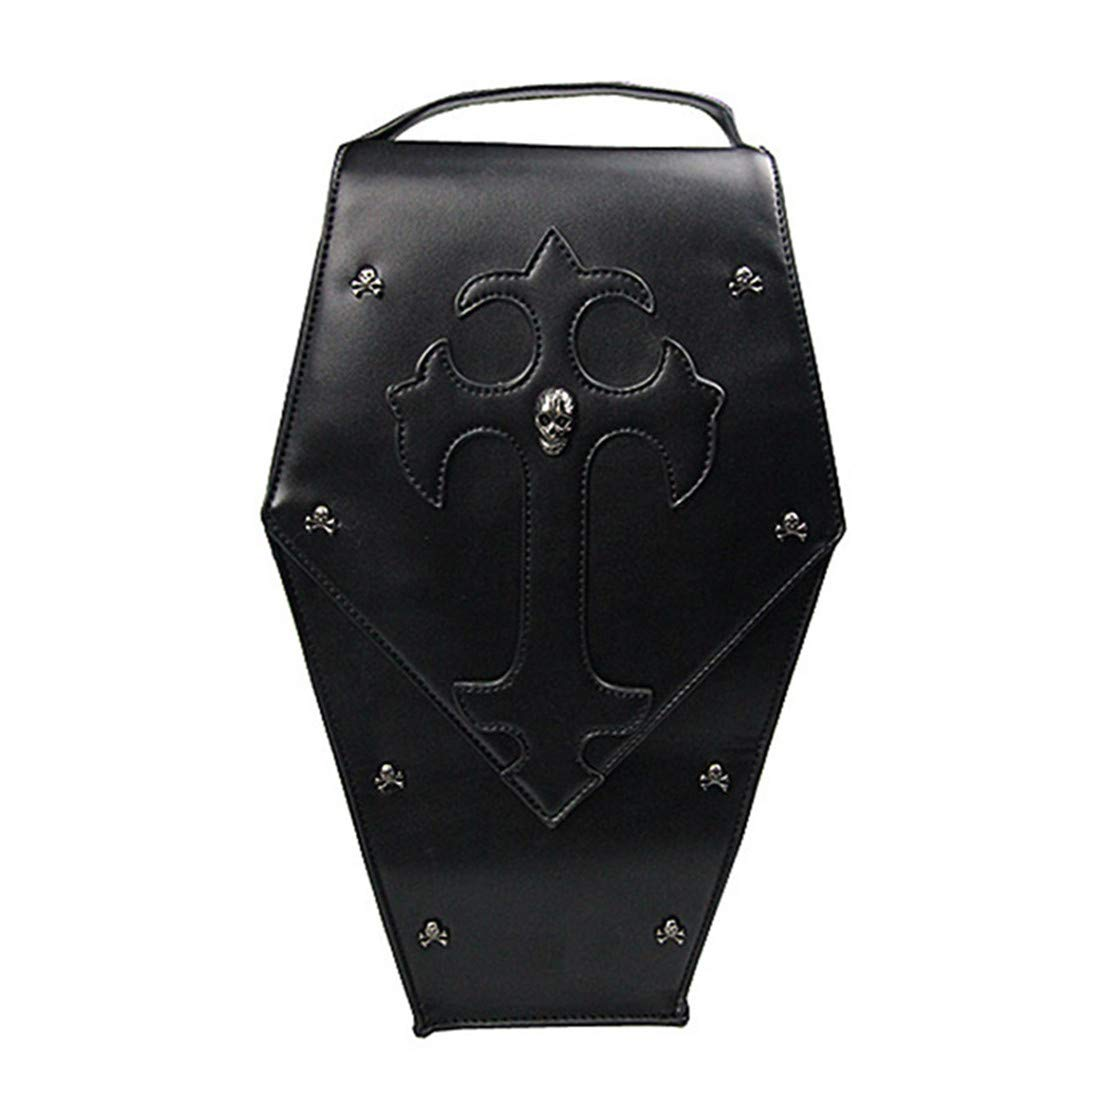 Qhome Steampunk Shoulder Bags Personality Gothic Punk Vintage Women Messenger Bags Fashion Female Leisure PU Leather Cross Body bag